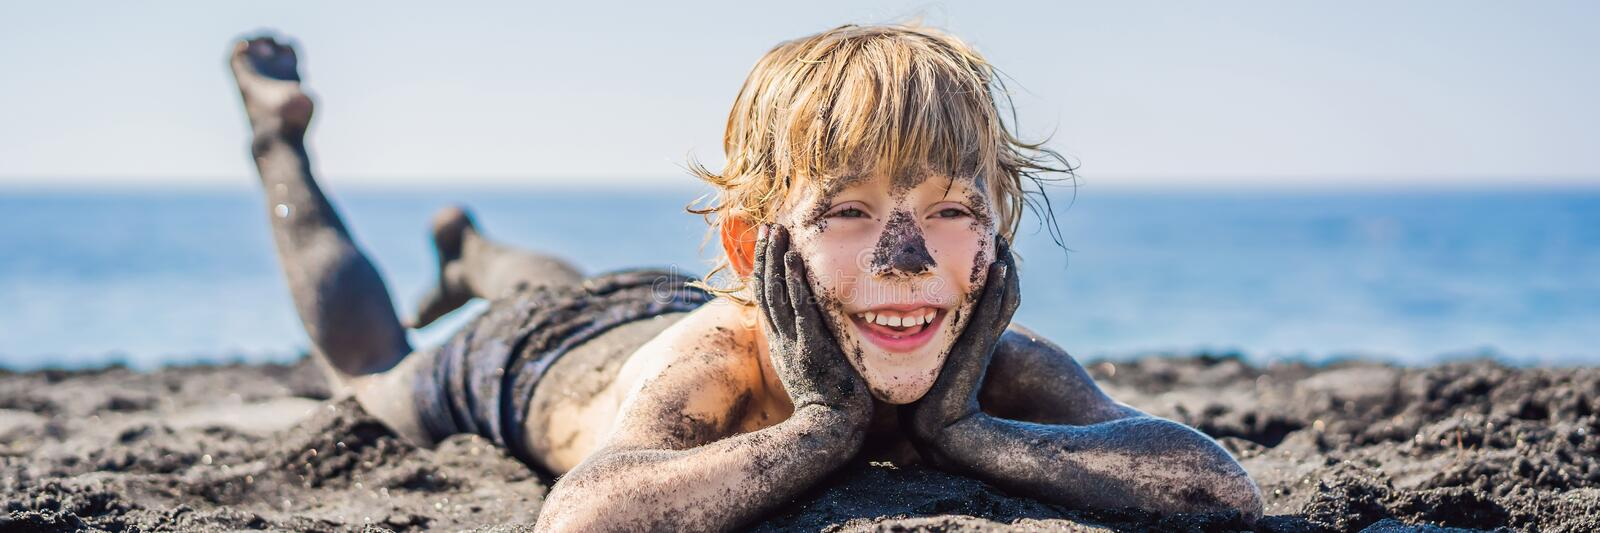 BANNER, LONG FORMAT Black Friday concept. Smiling boy with dirty Black face sitting and playing on black sand sea beach stock image